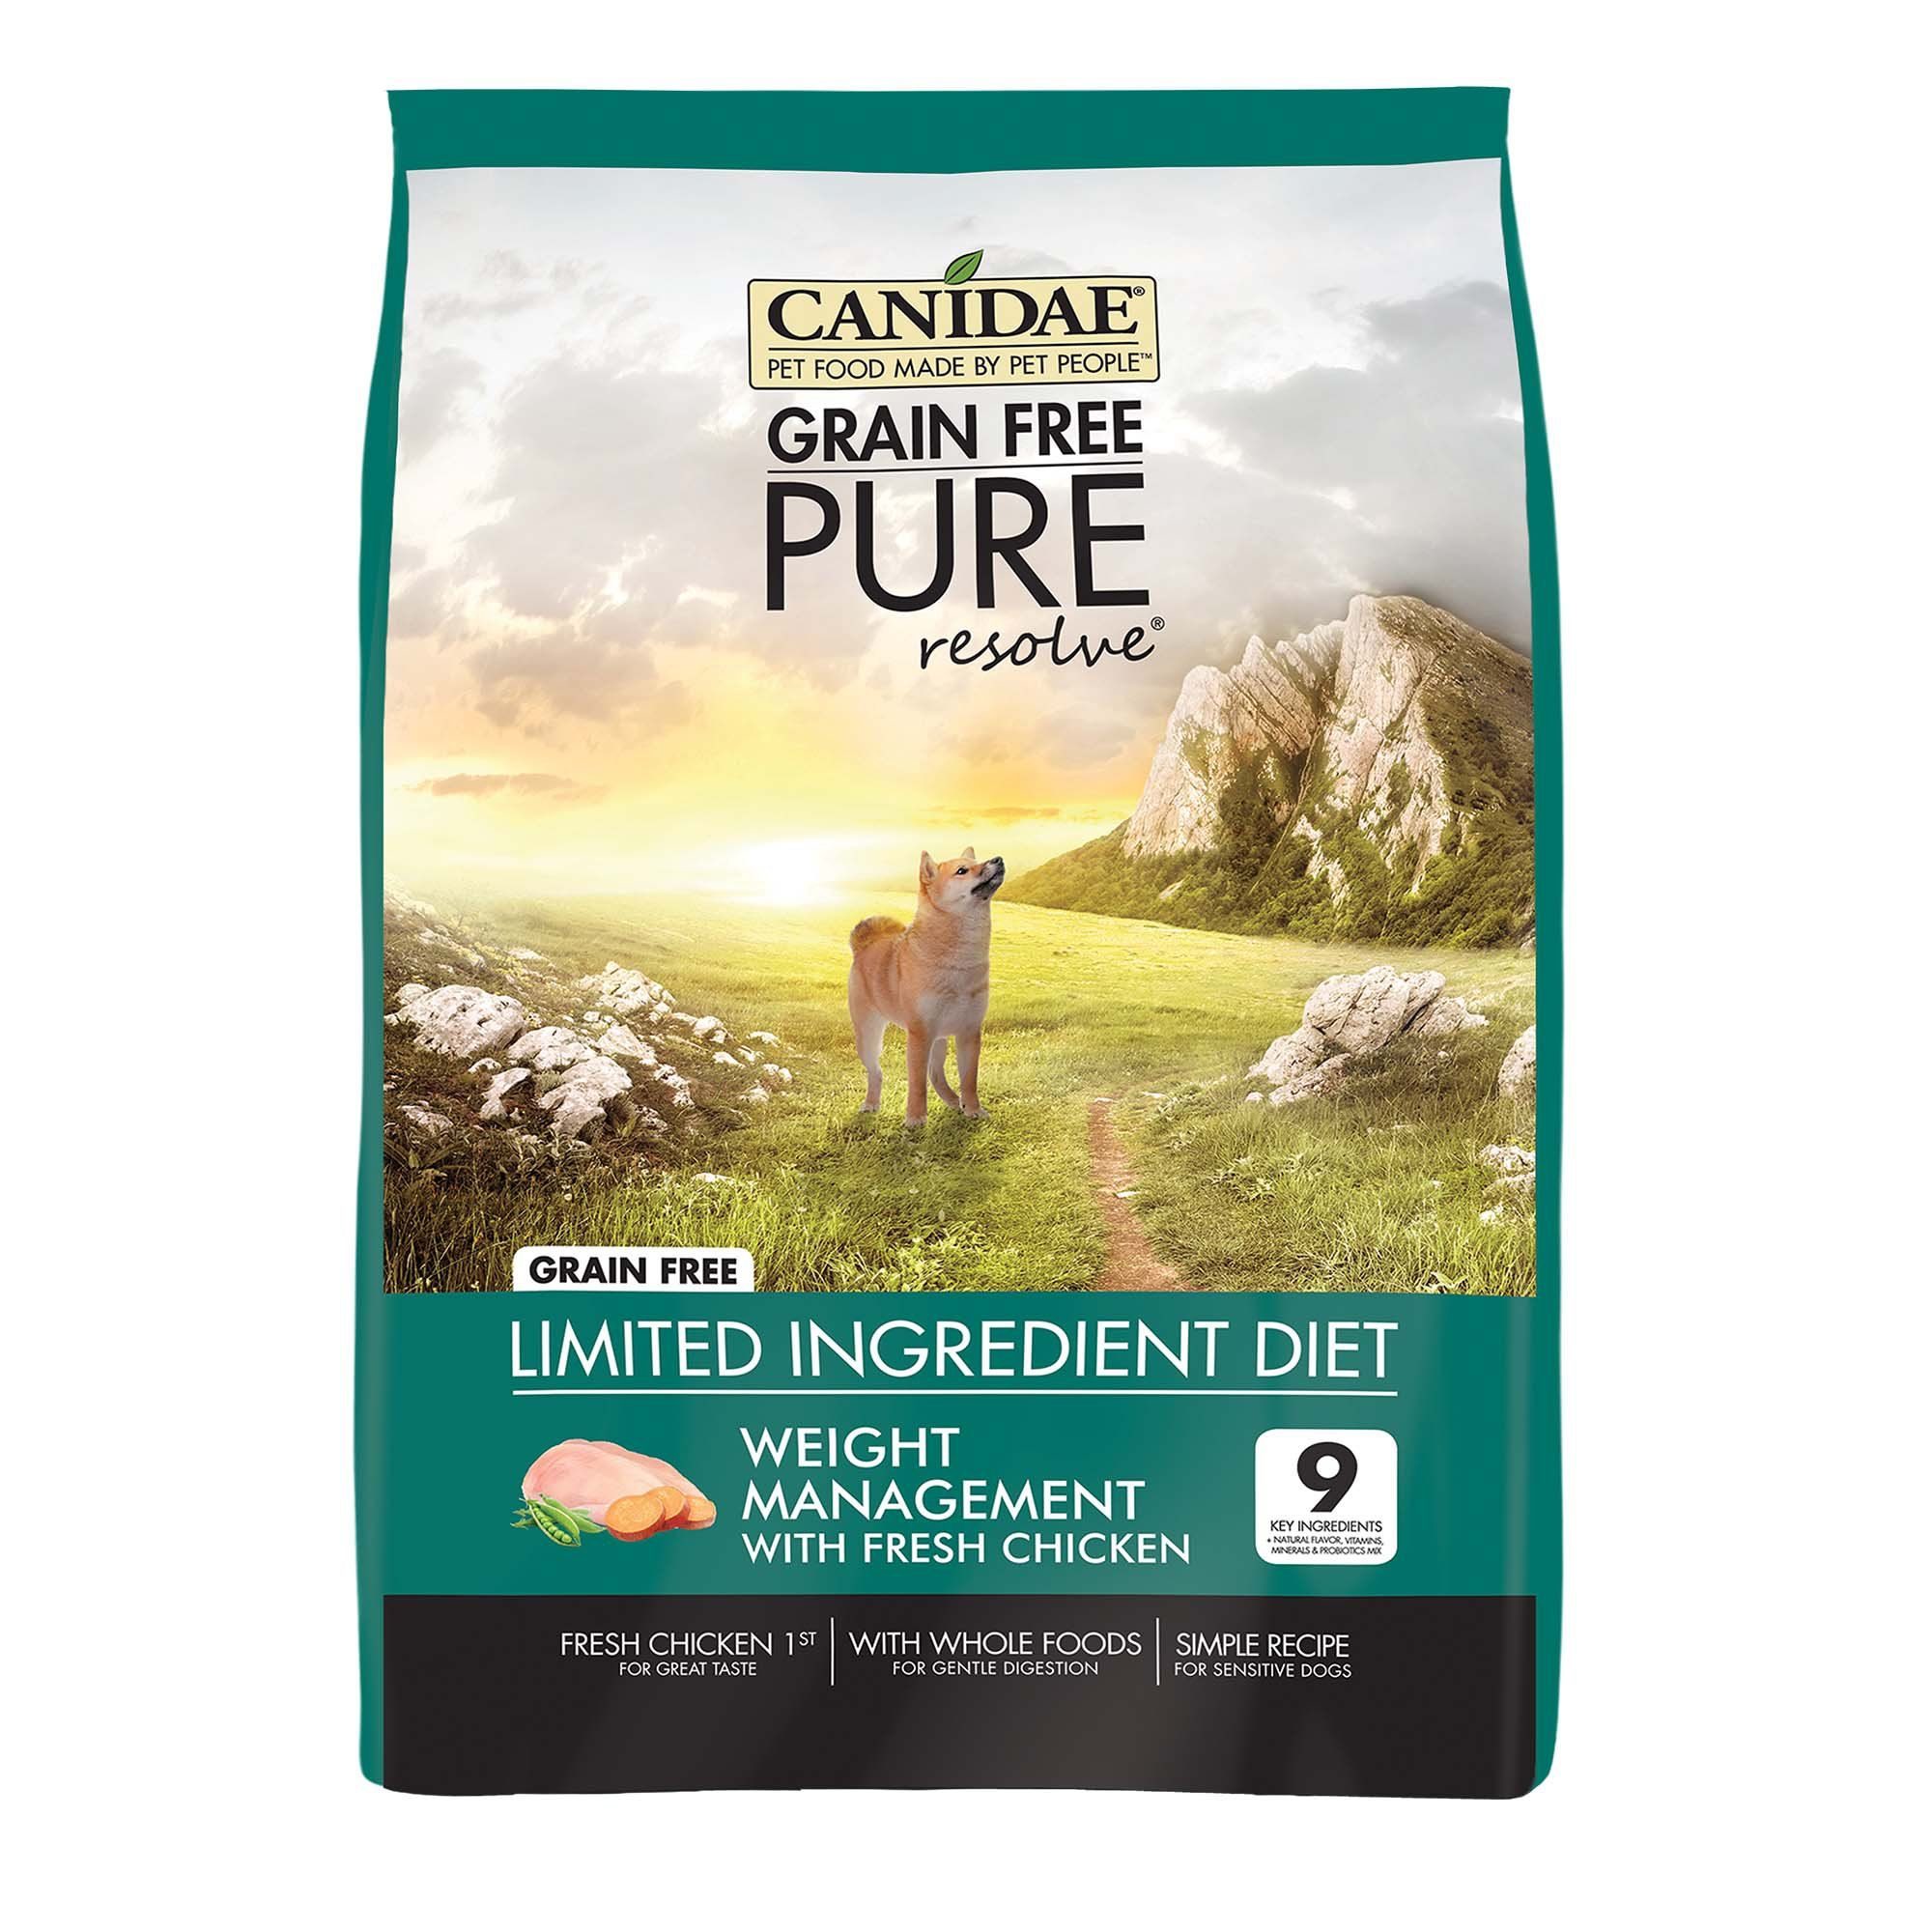 Canidae Pure Grain Free Limited Ingredient Healthy Weight Real